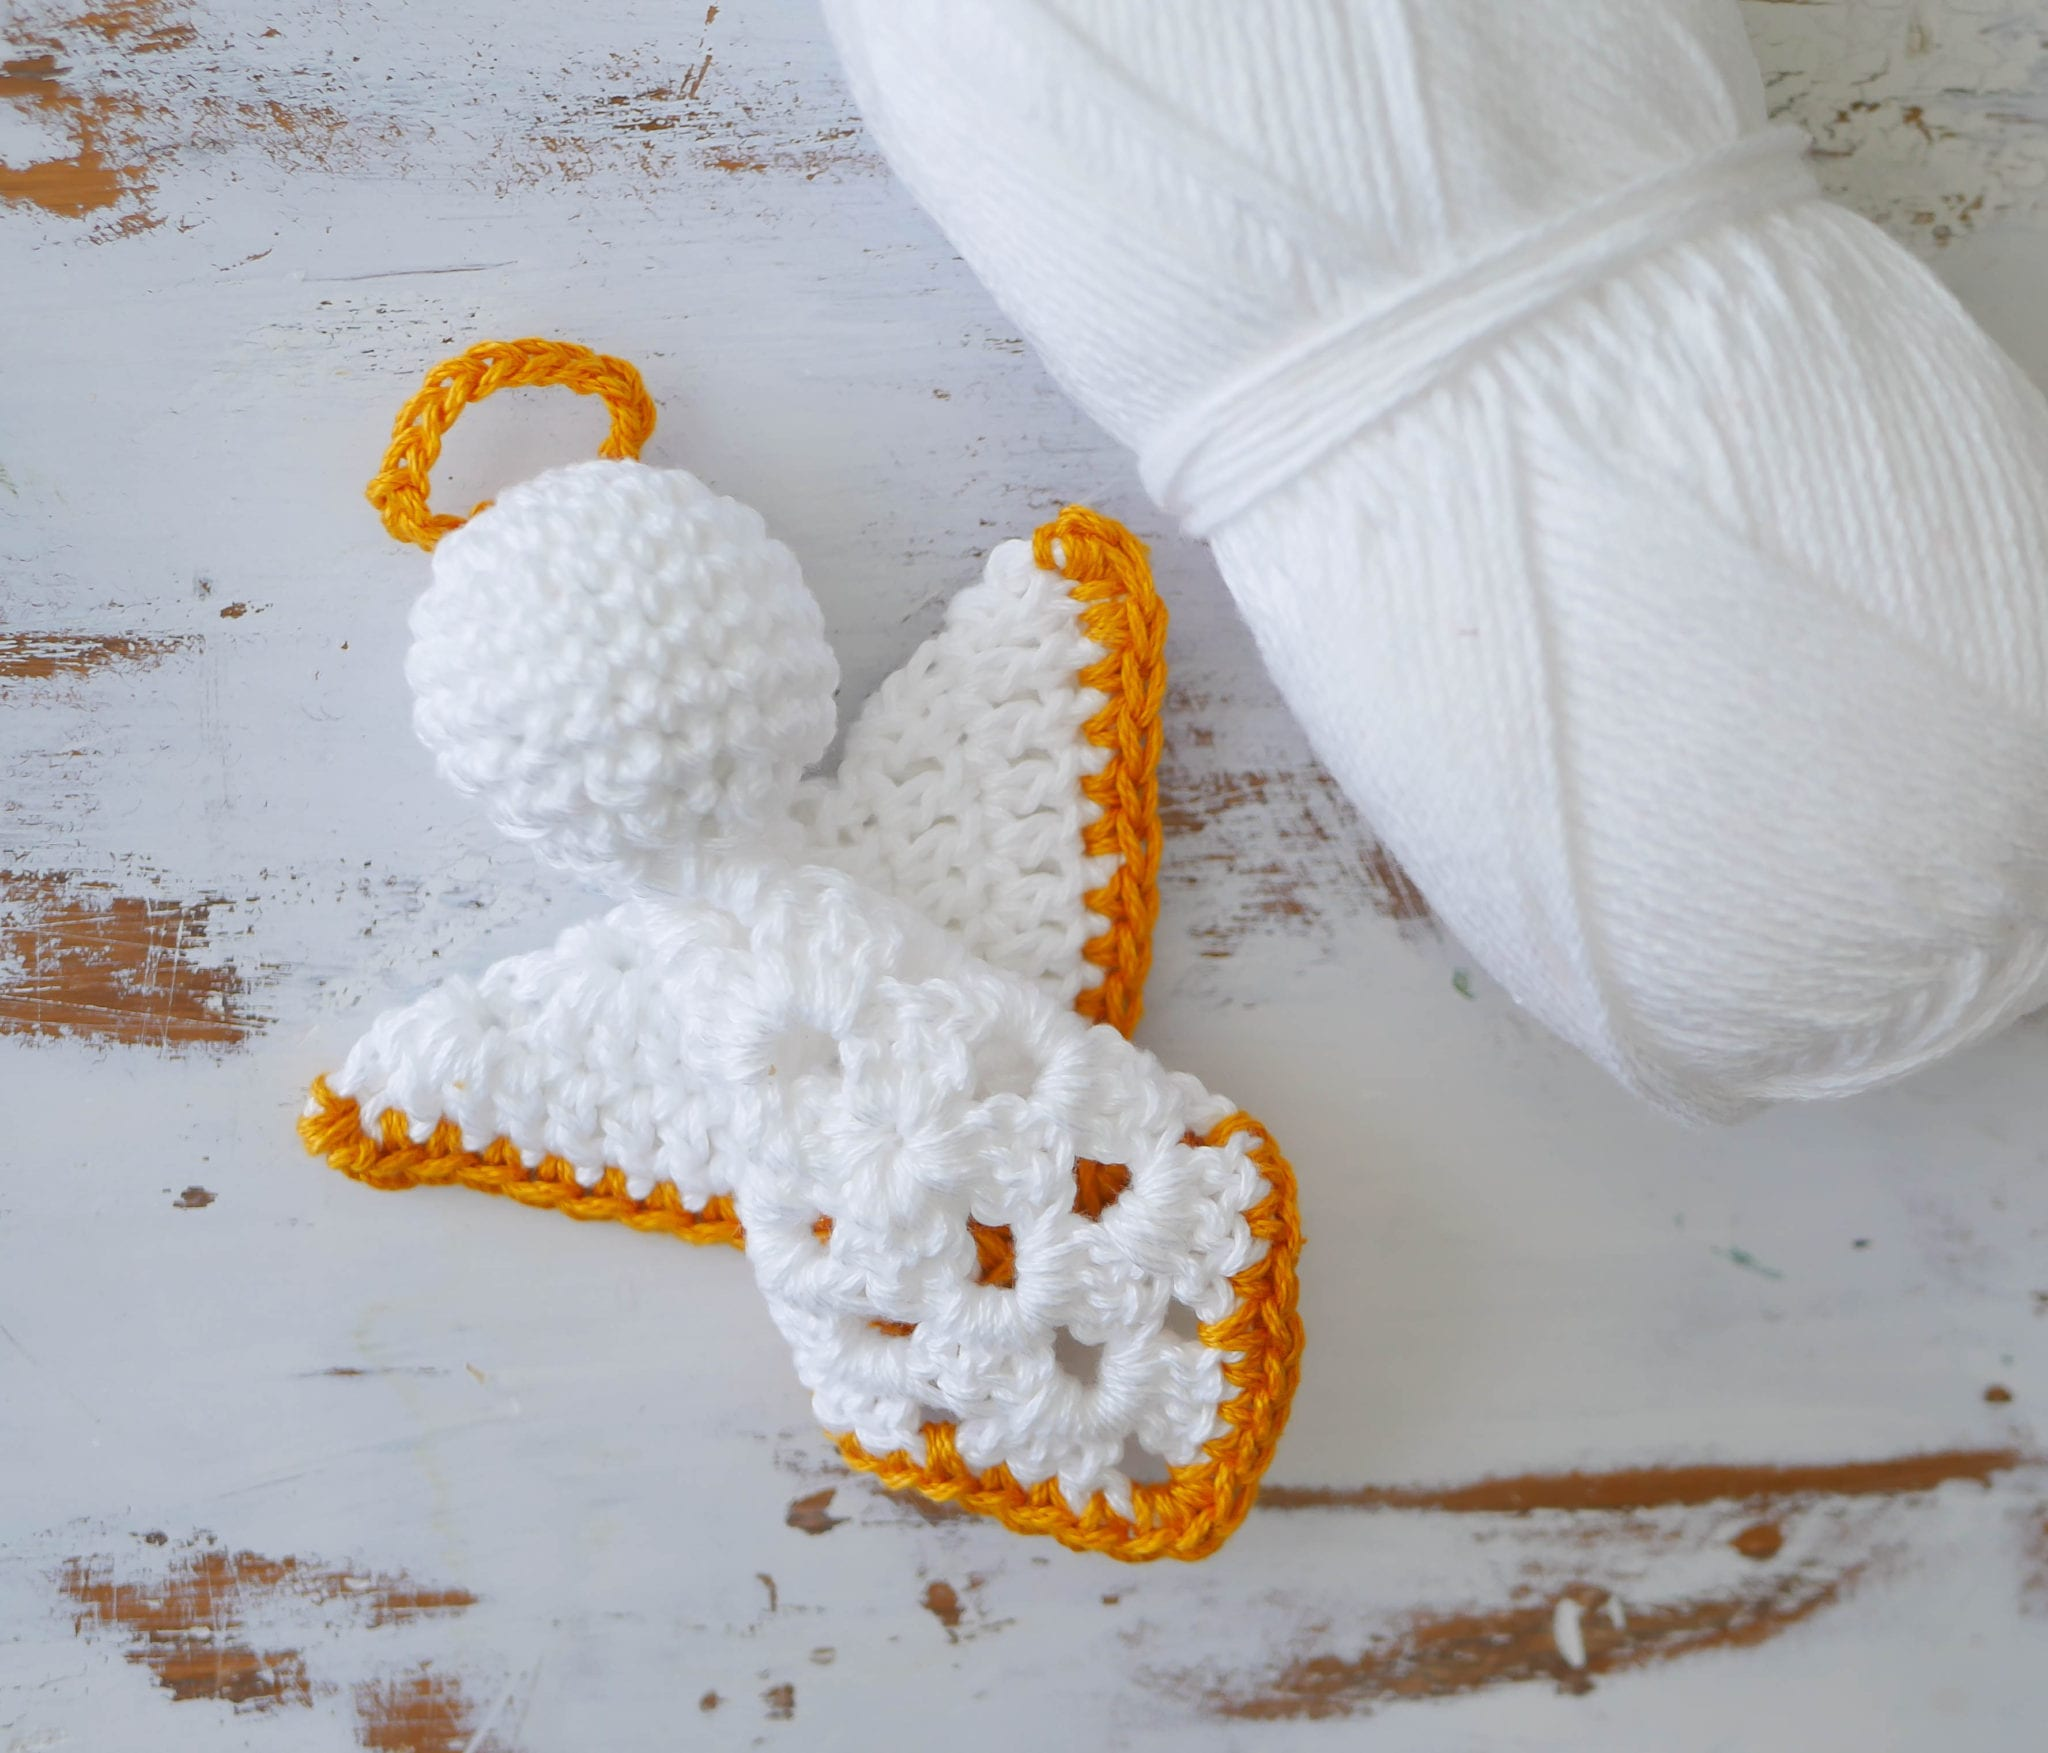 Crochet Granny Square Angel Christmas Ornament - Sewrella